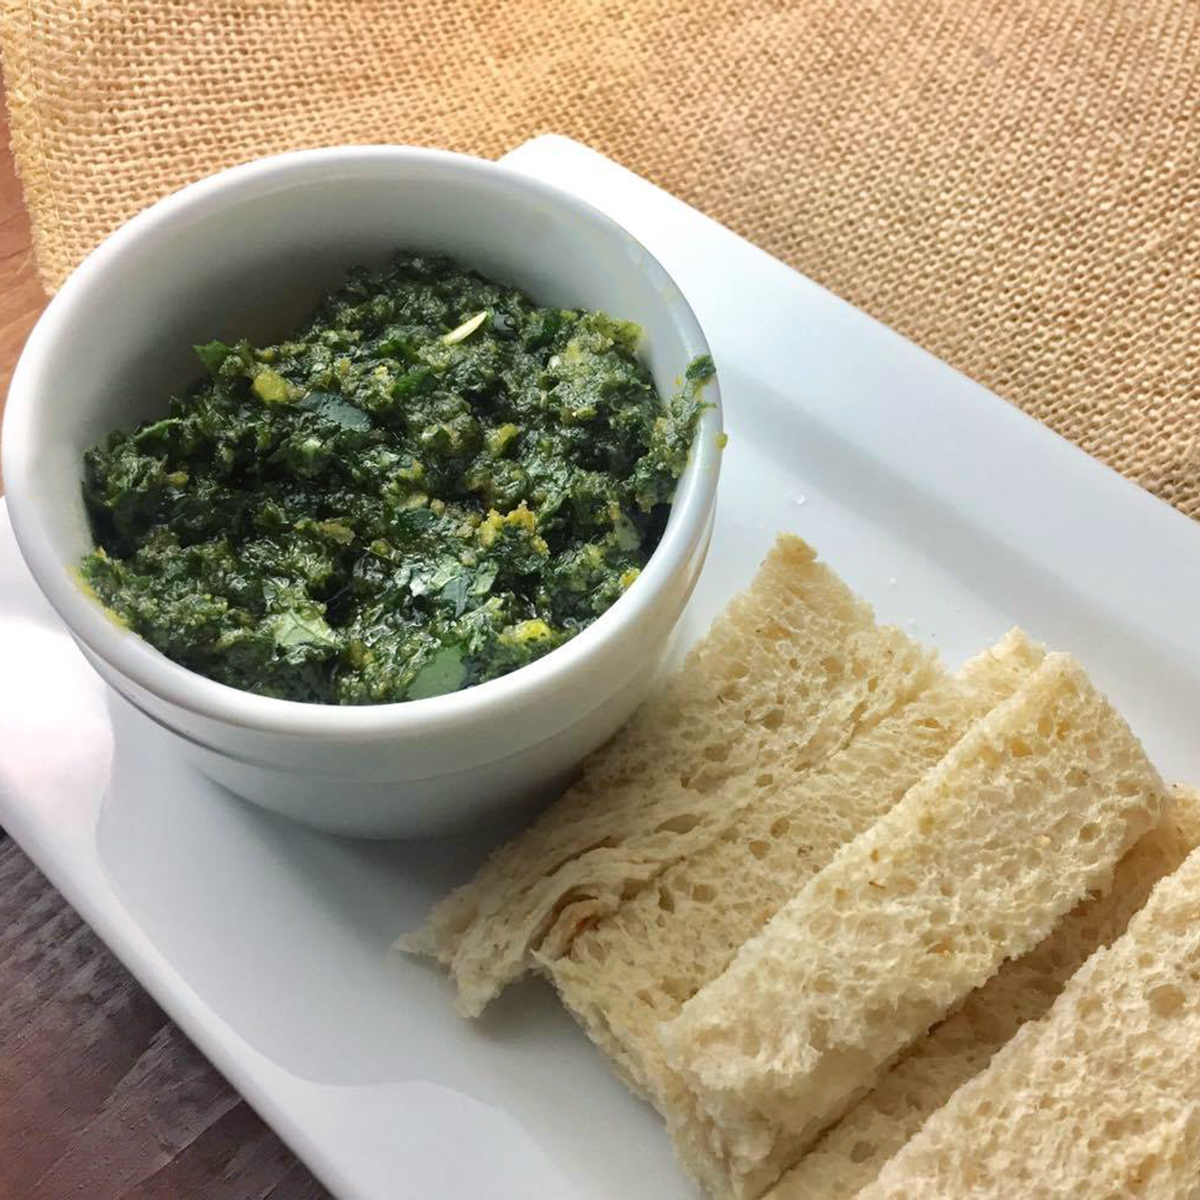 Recipe and Image by Dawn Hutchins